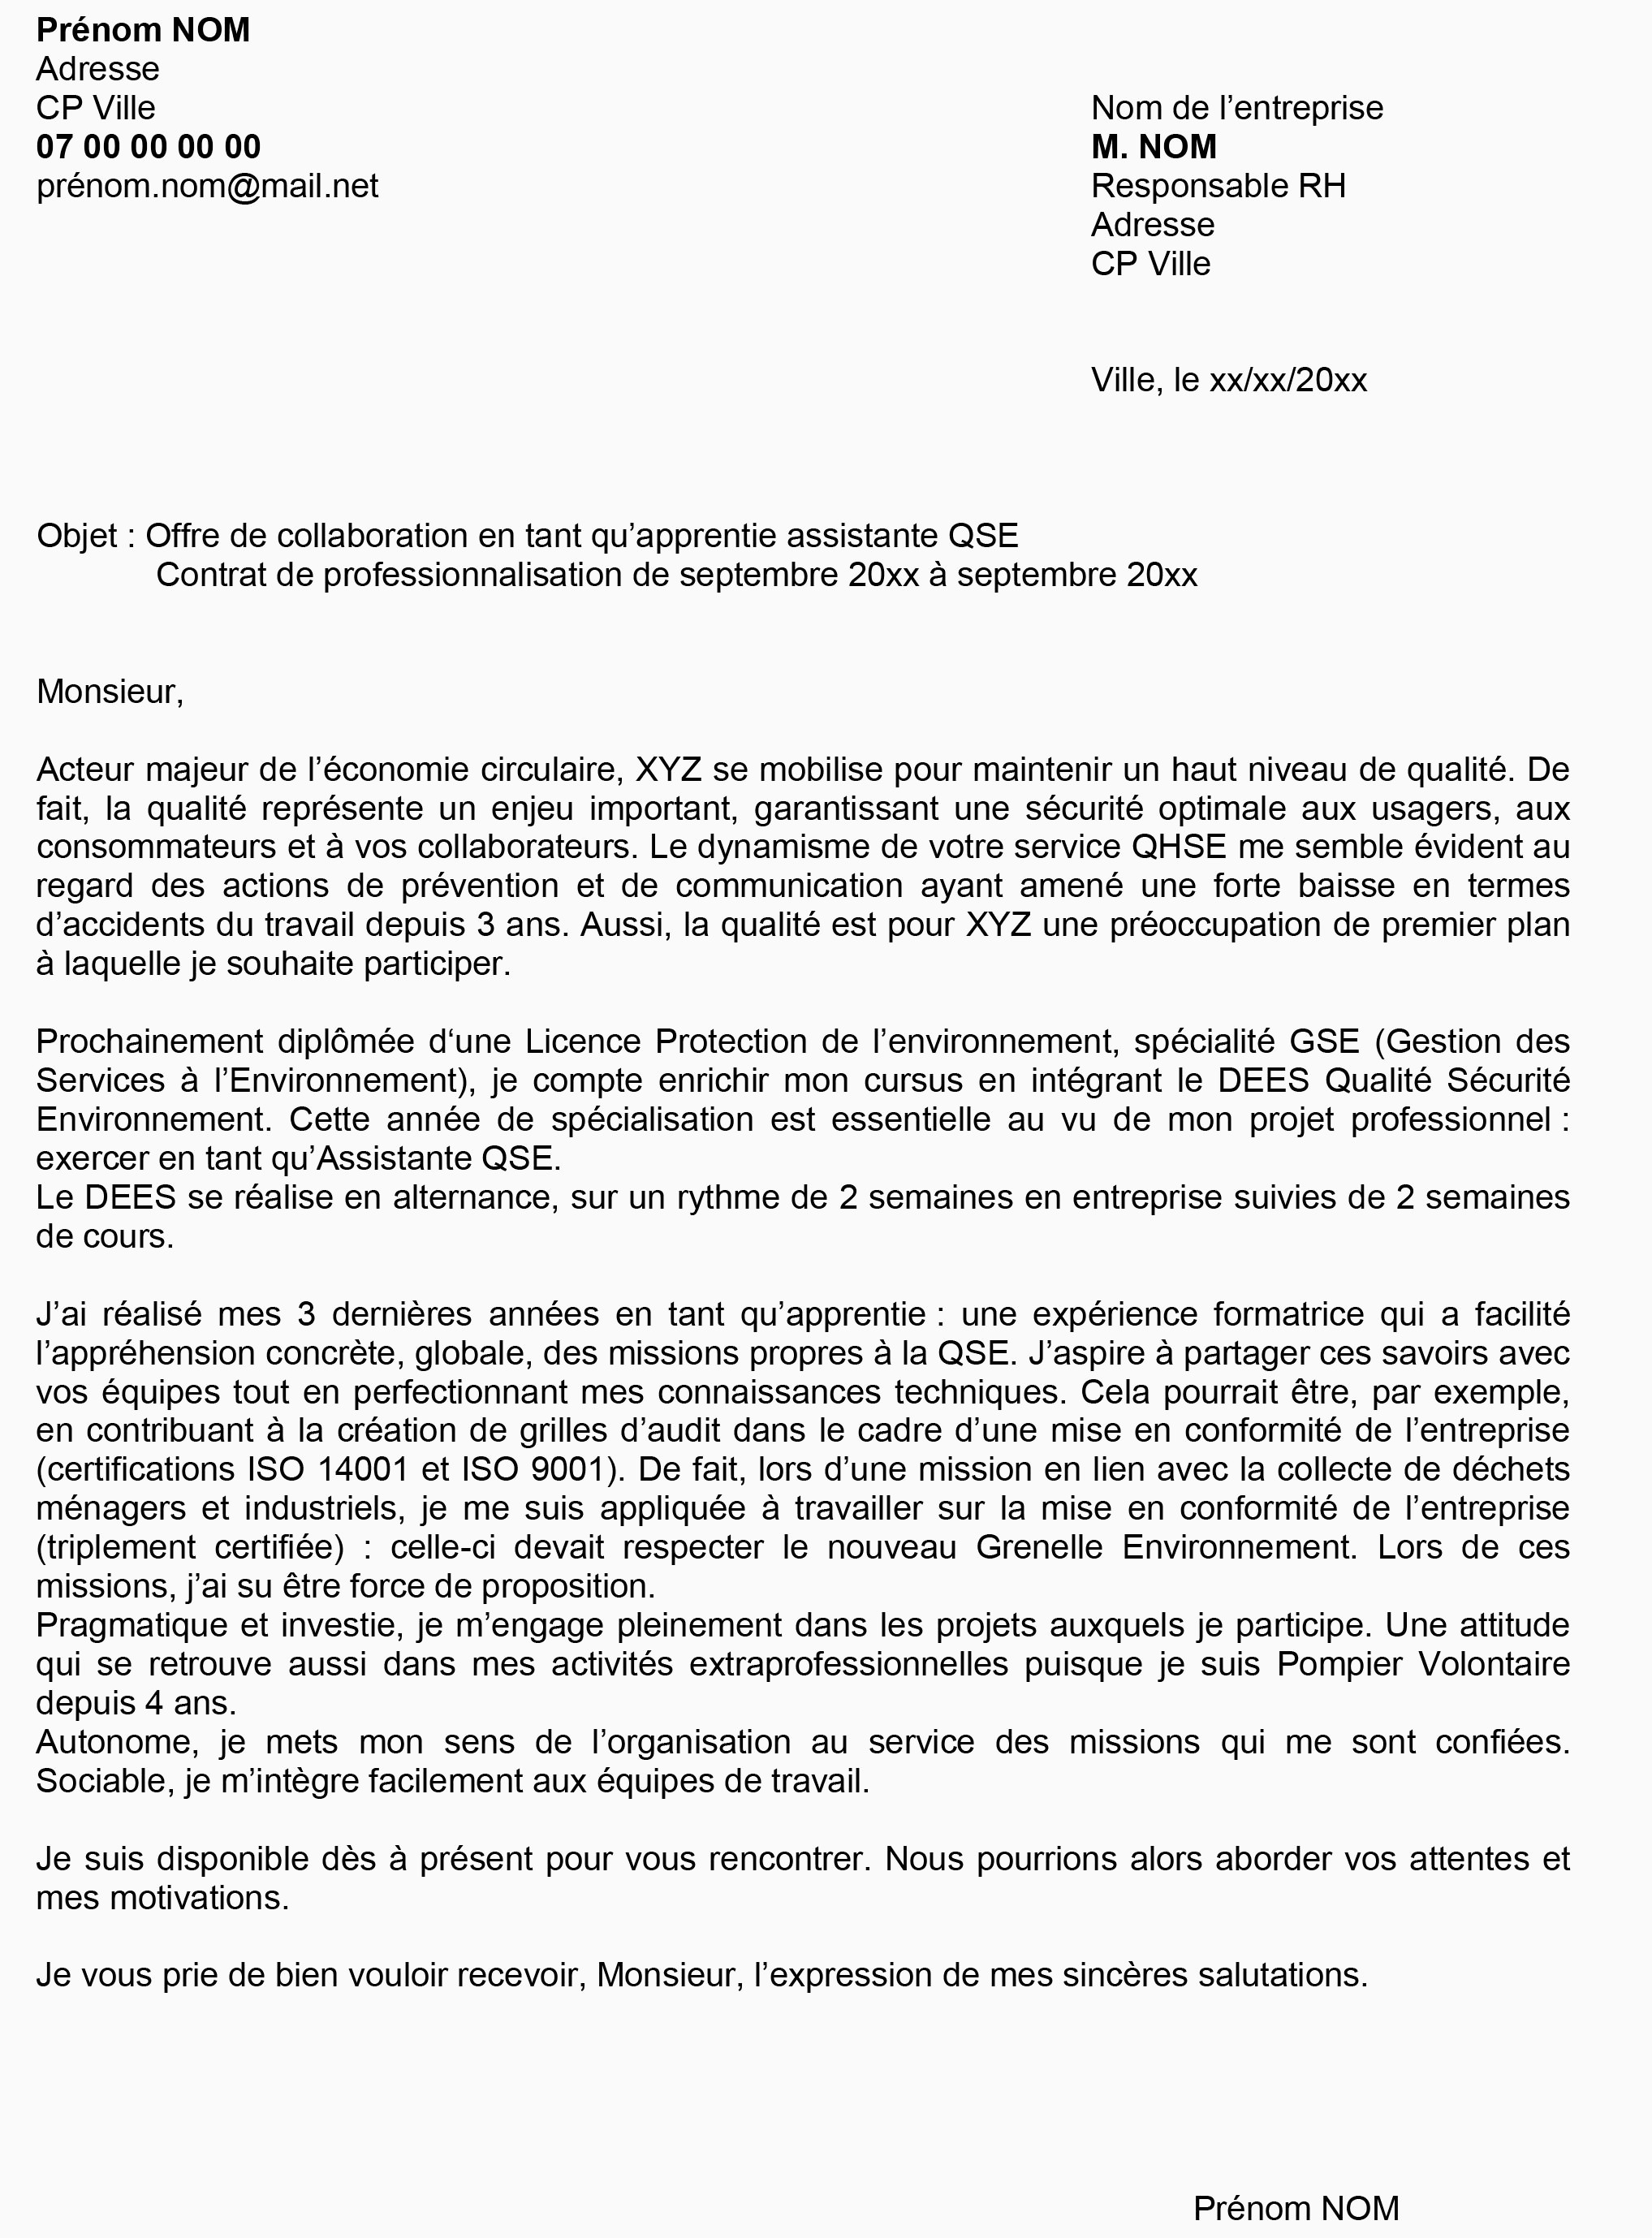 Lettre De Motivation Licence Rh Alternance Lettre De Motivation Licence Rh Alternance Entreprise